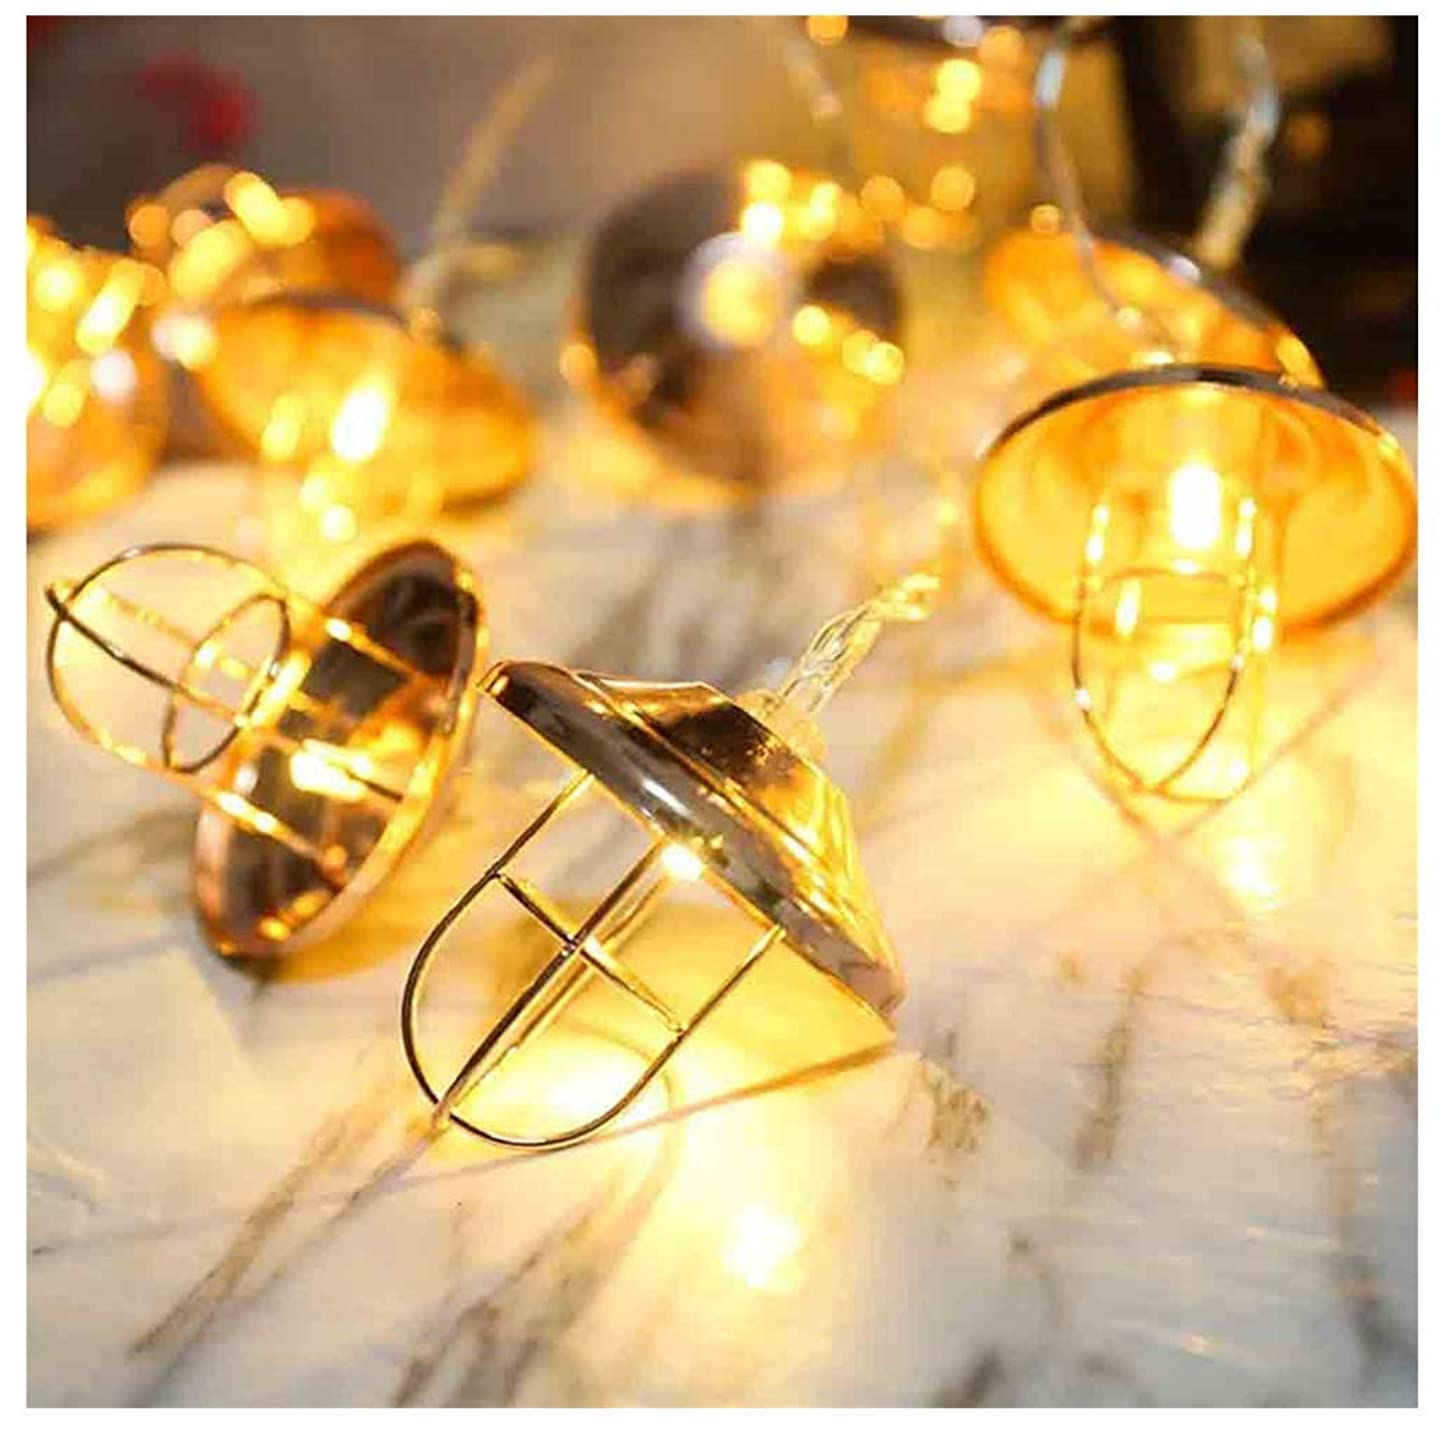 Window Curtain String Lights, String Light Geometric Classical Iron 10/20 LEDs Lamps String Light for Wedding Party Home Garden Bedroom Indoor Wall Decorations Commercial Decor (3m, Rose Gold)